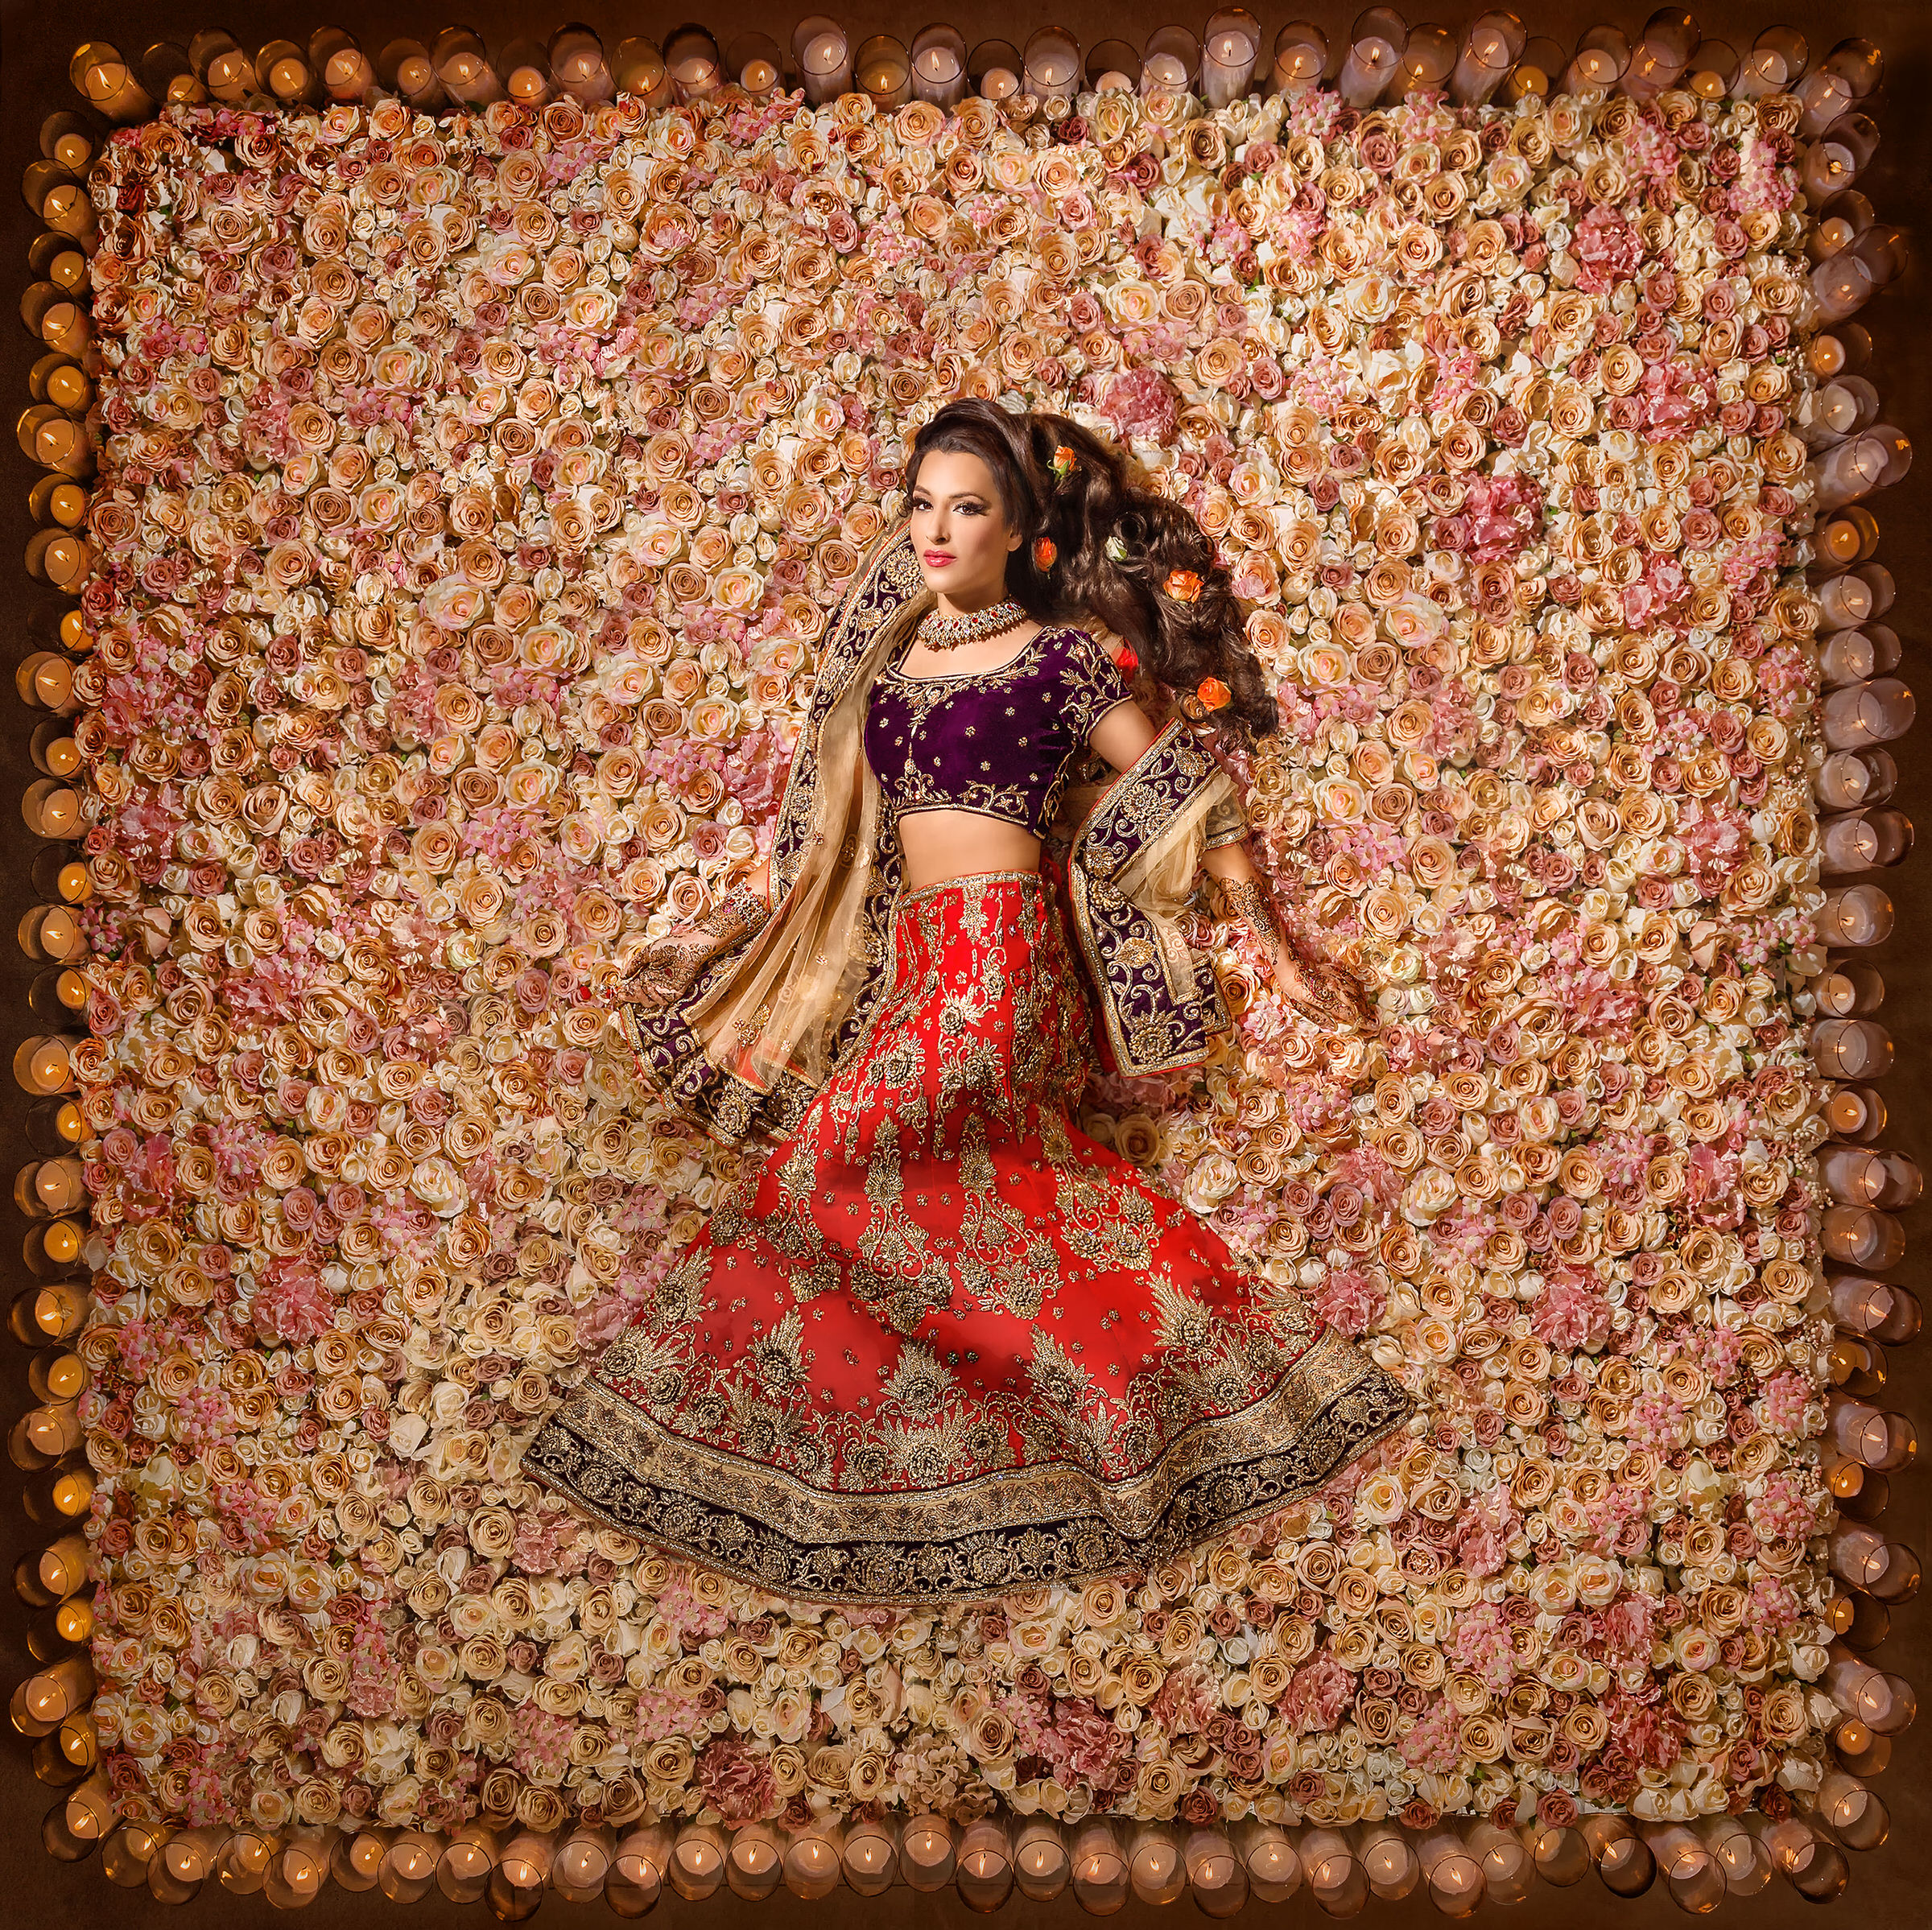 Indian bride against gigantic bed of roses with border of candles - photo by Eye Jogia Photography